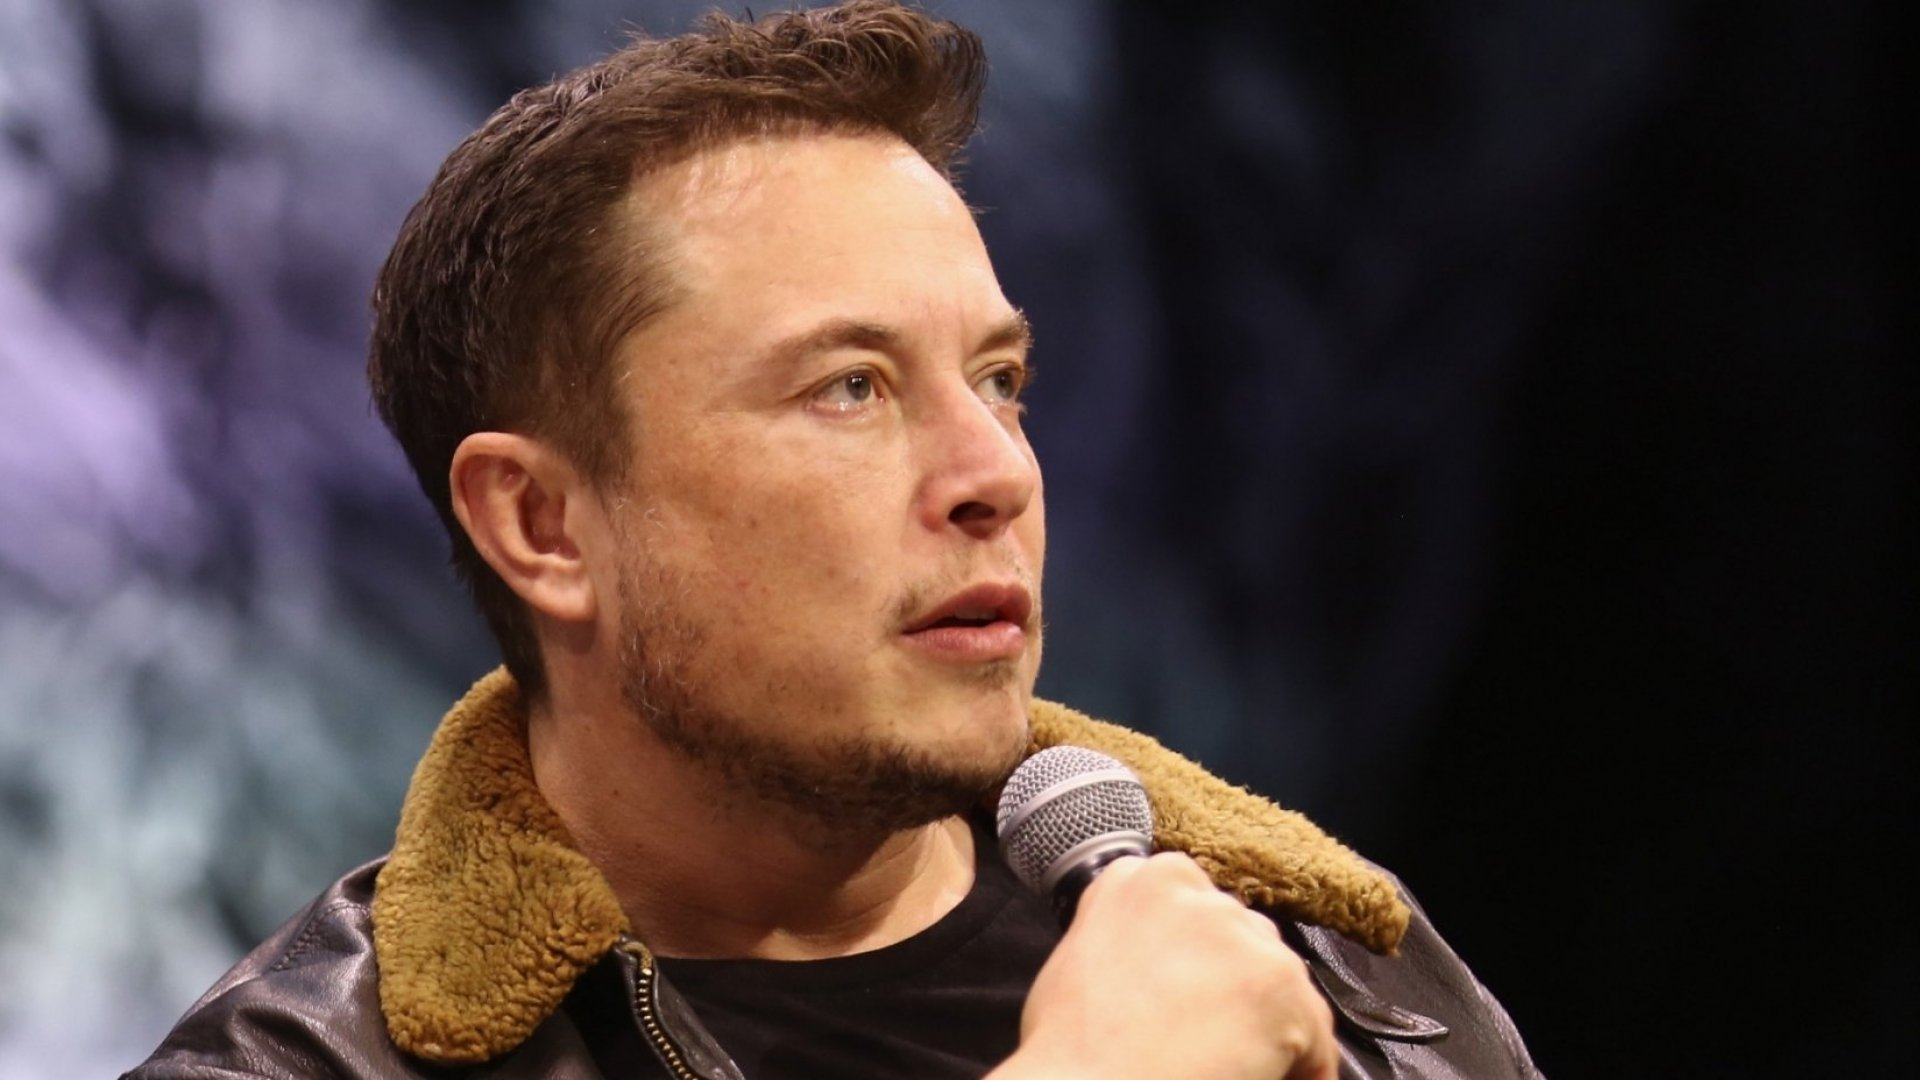 Elon Musk Had a Hilarious Response to a Reporter's Request for an Interview